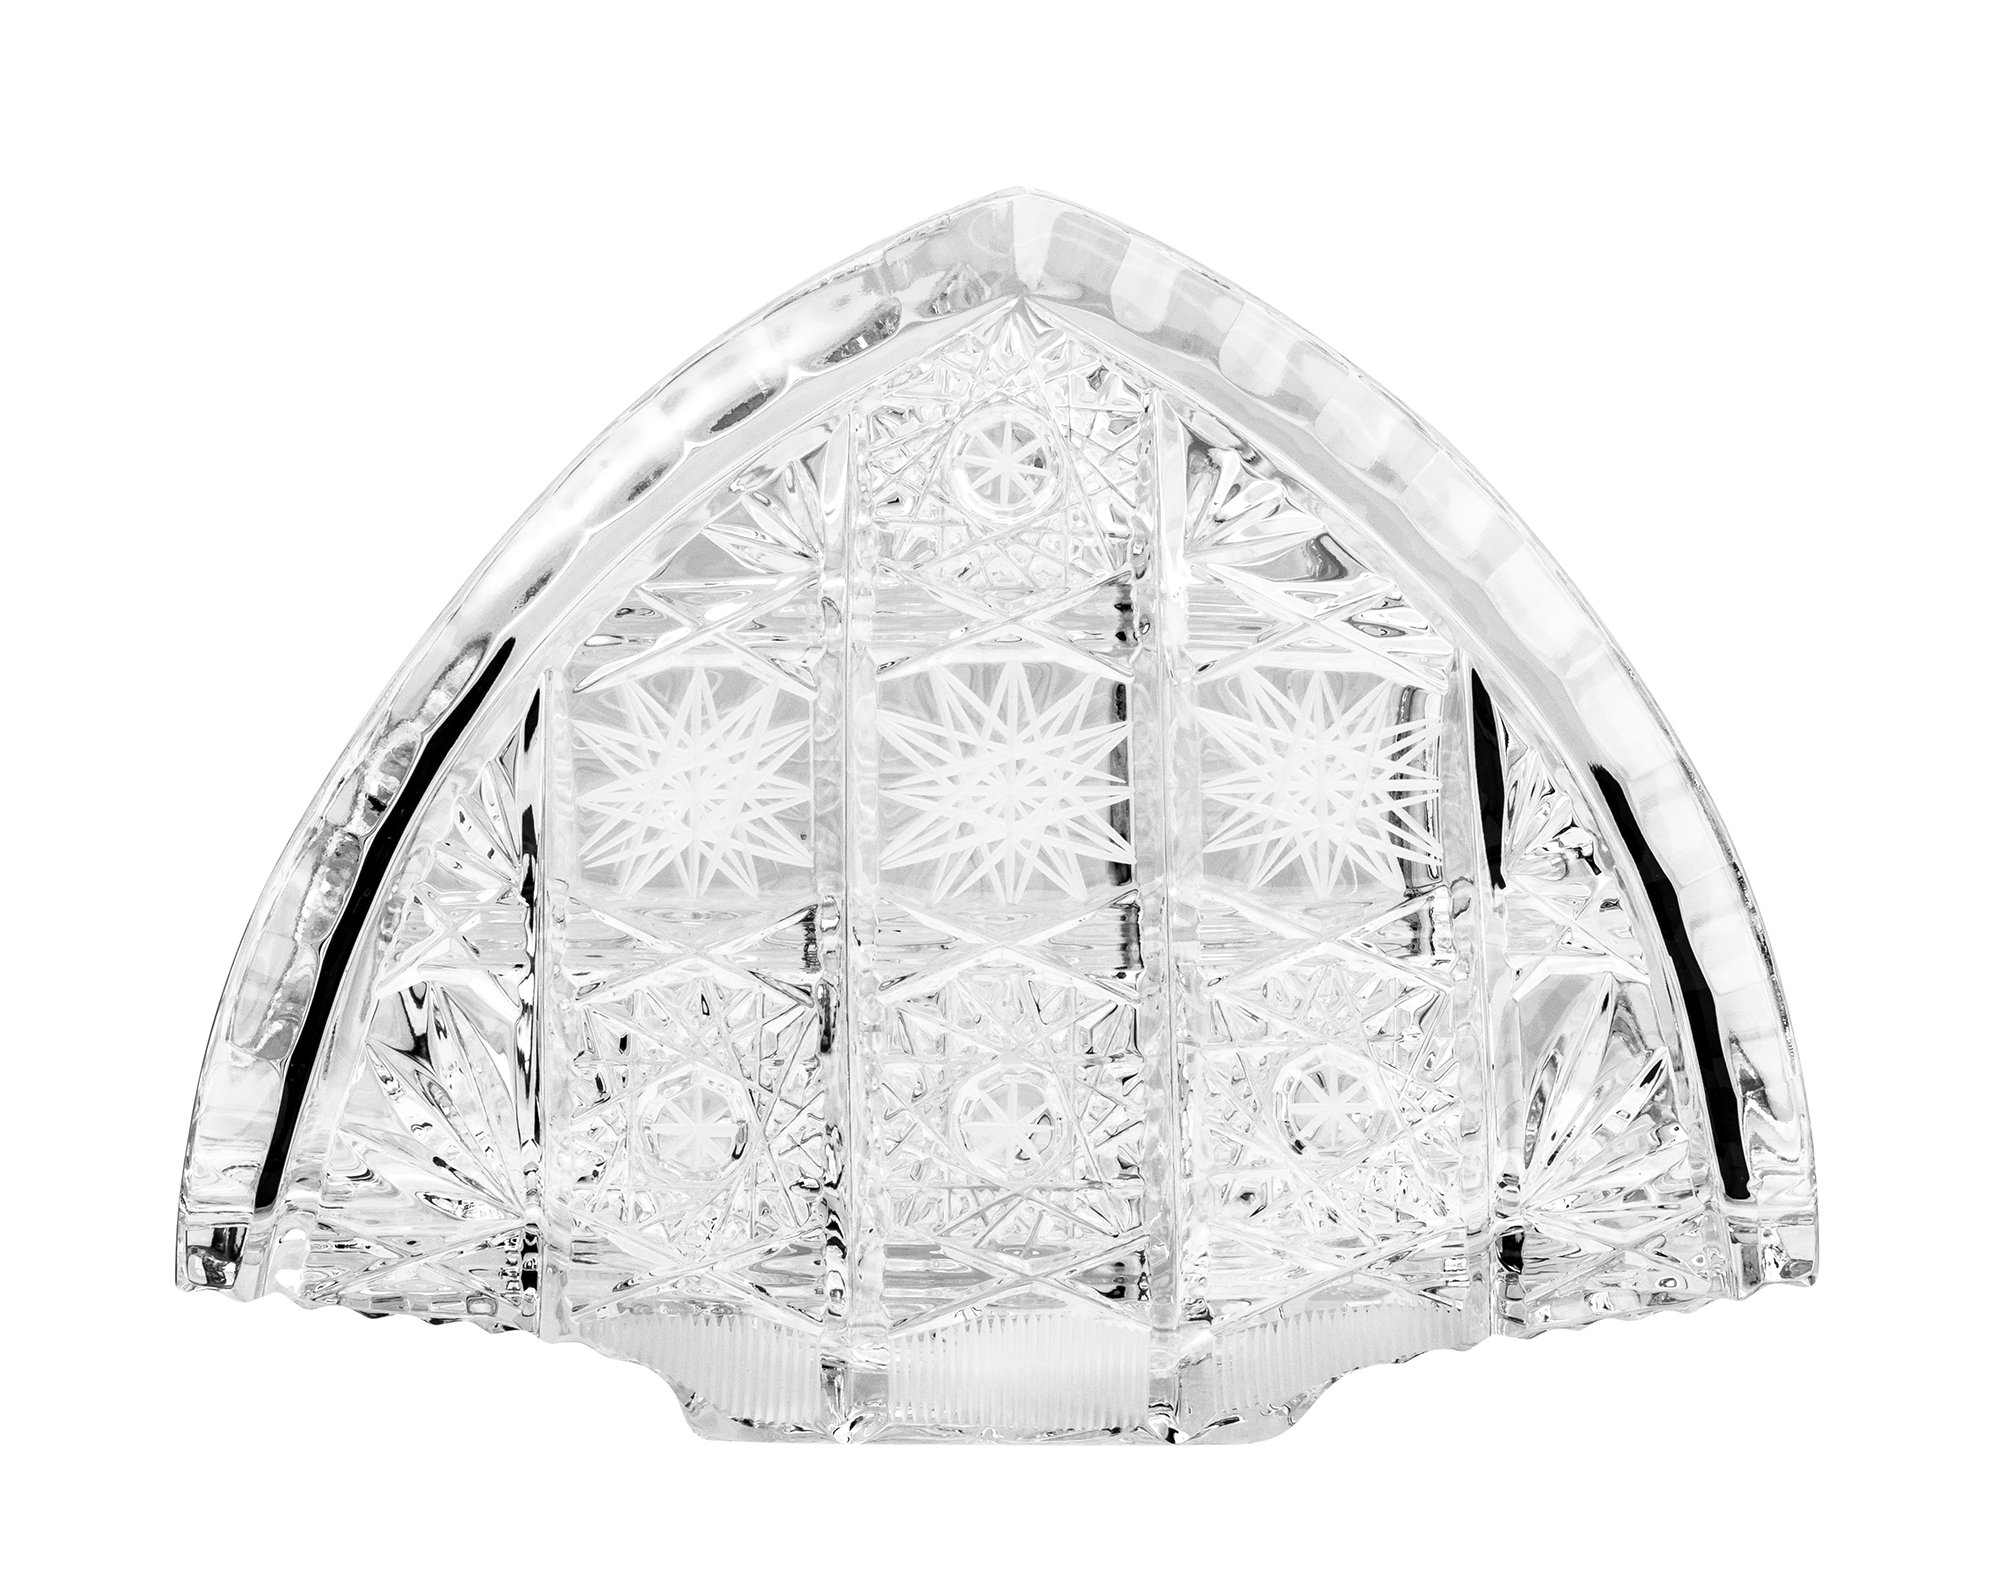 Bohemia Crystal 50221, 5.5-Inch Crystal Napkin Holder, Centerpiece Wedding Gift Decorative Tabletop Napkin Stand